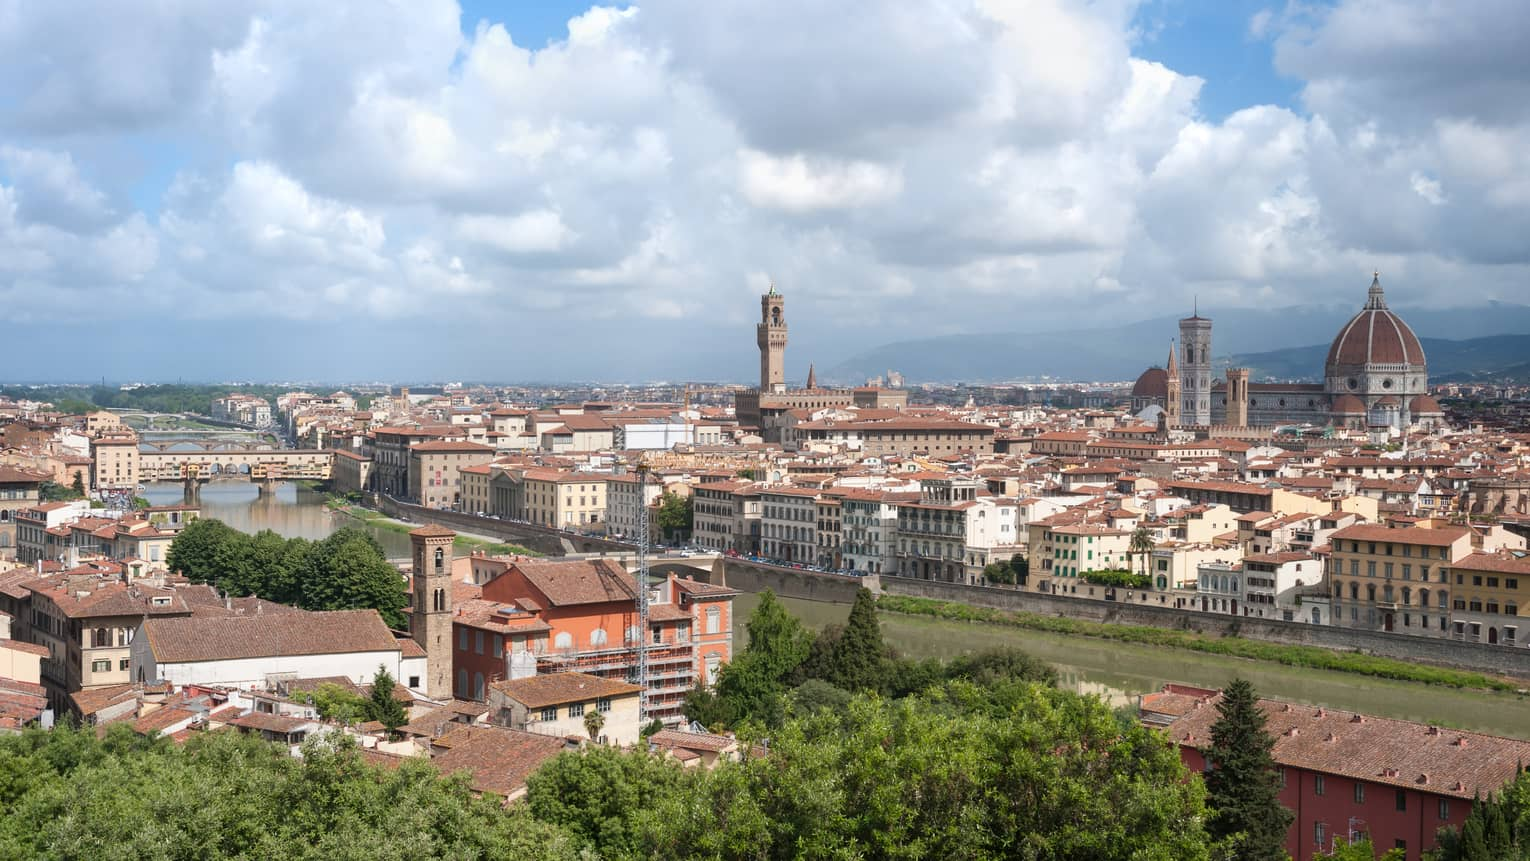 Daytime view over Florence rooftops, houses, cathedrals